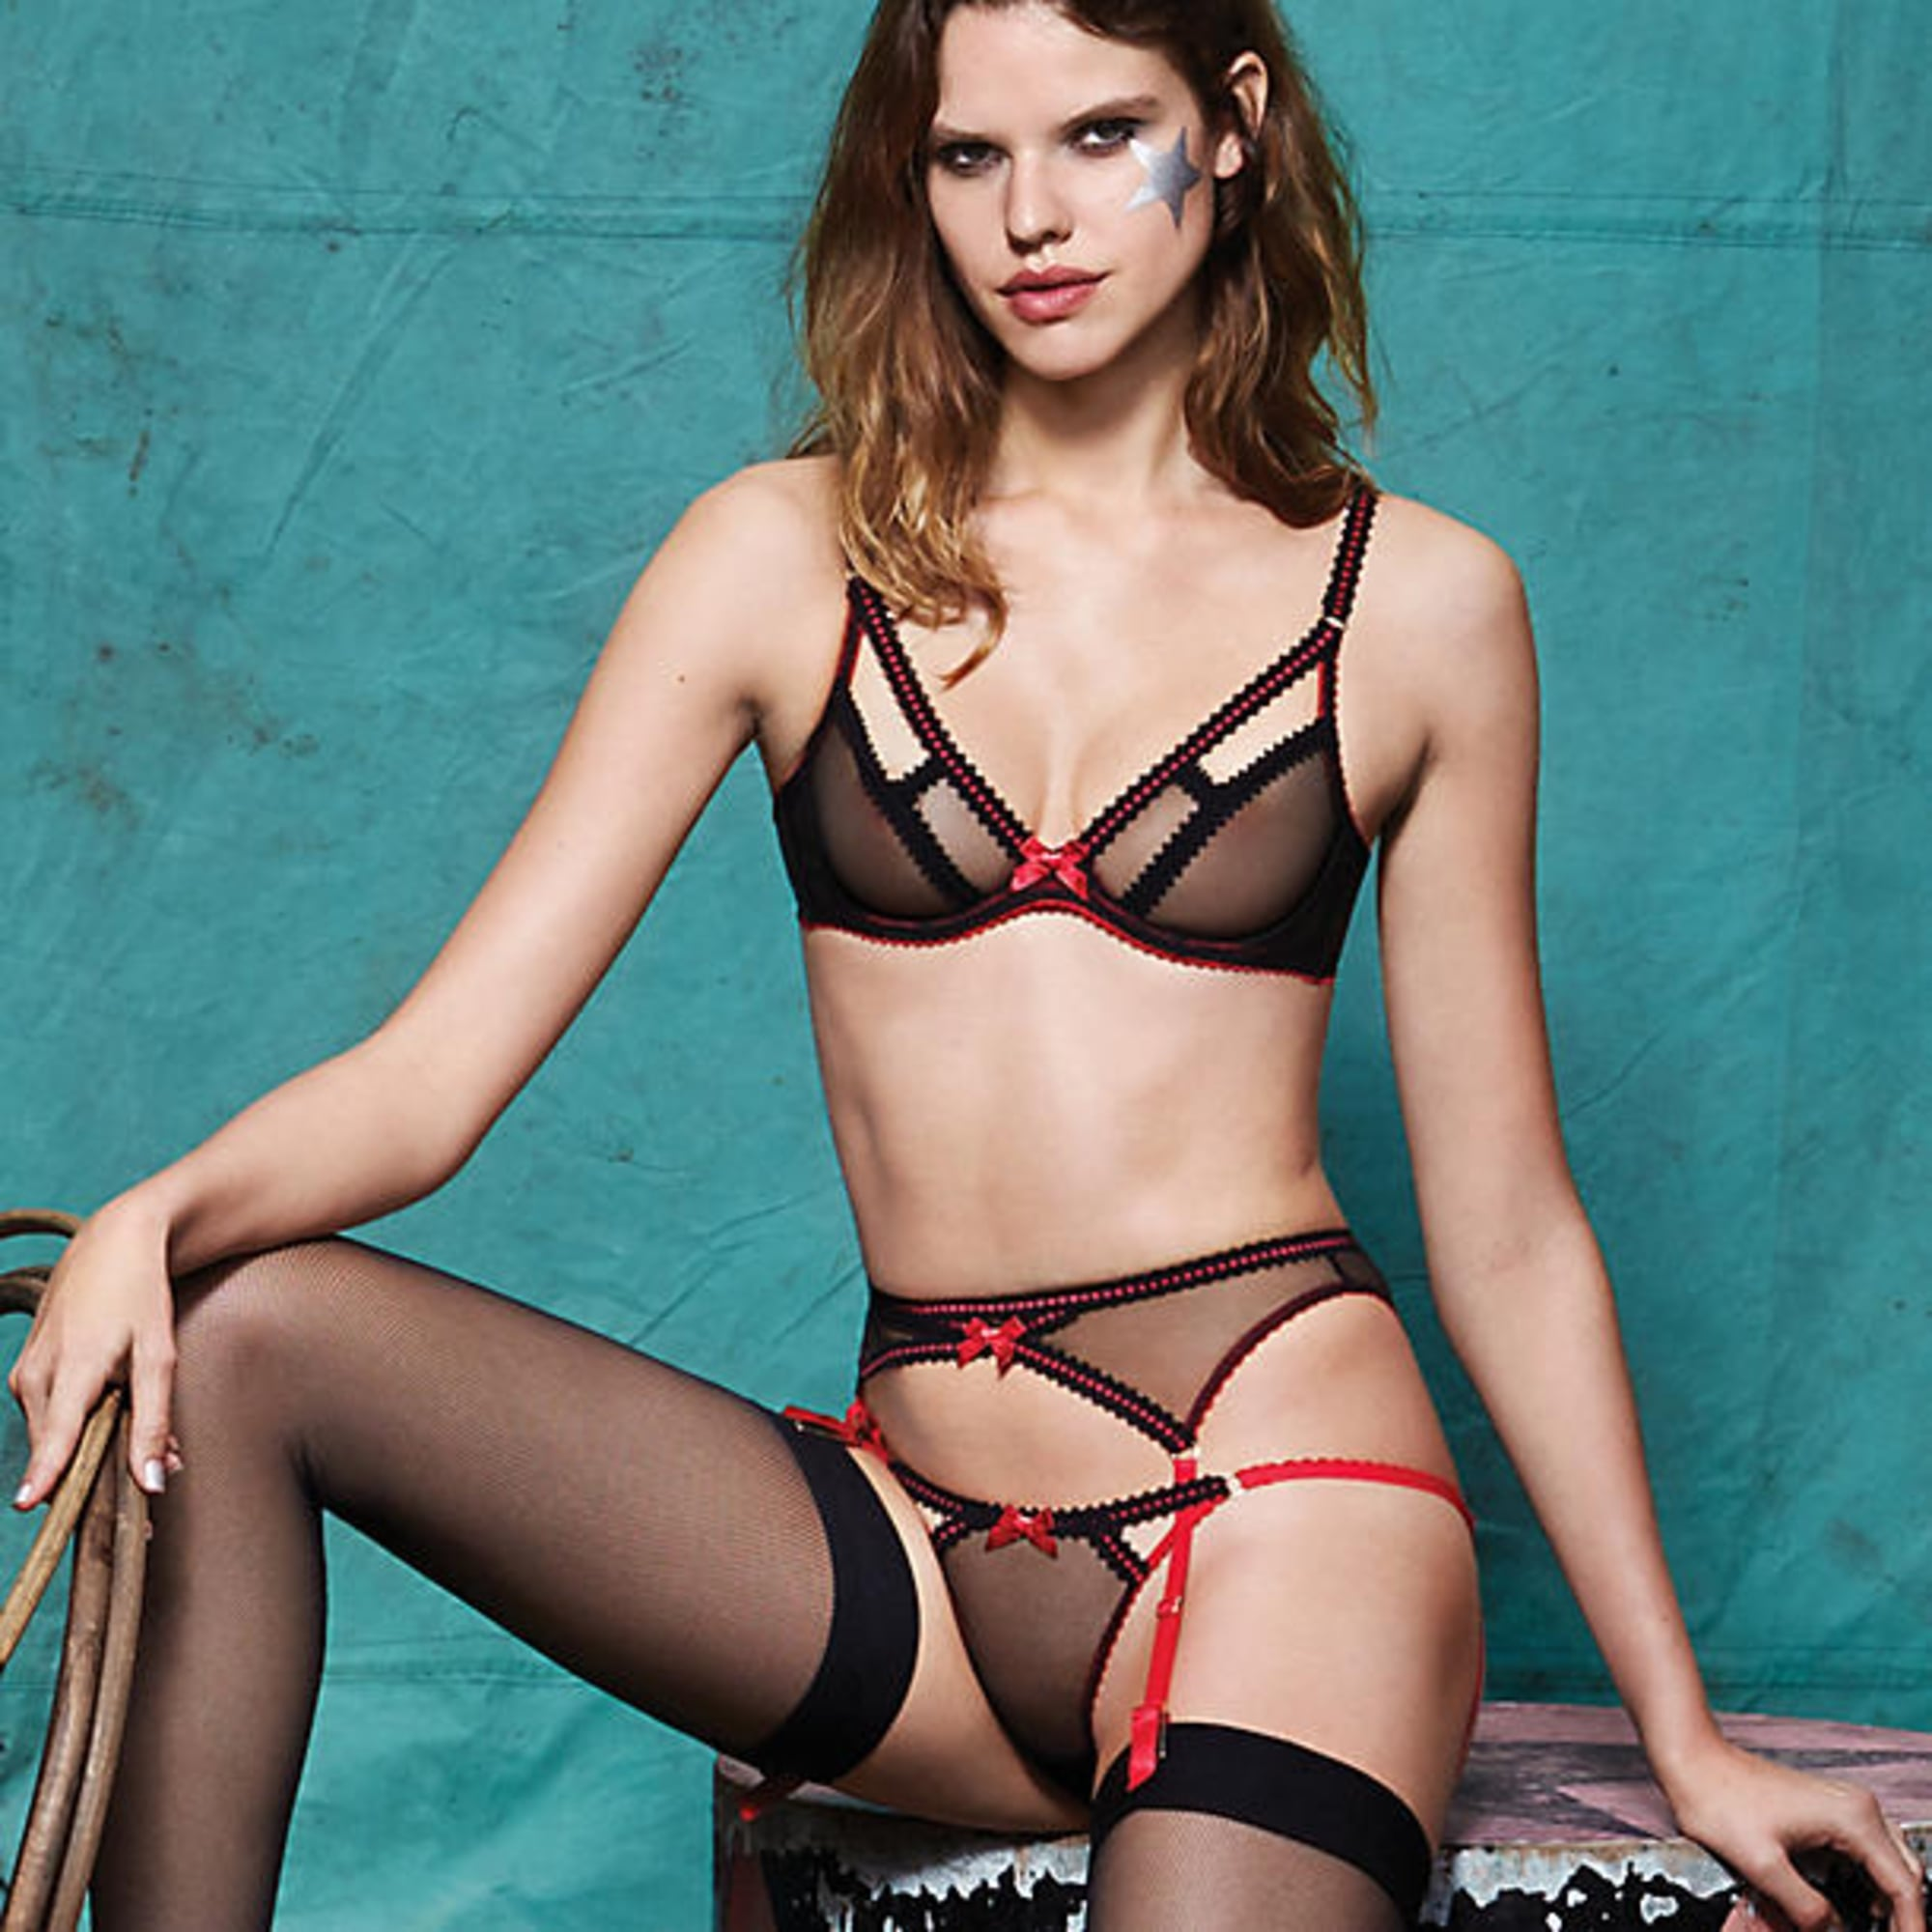 Sheer lingerie uk